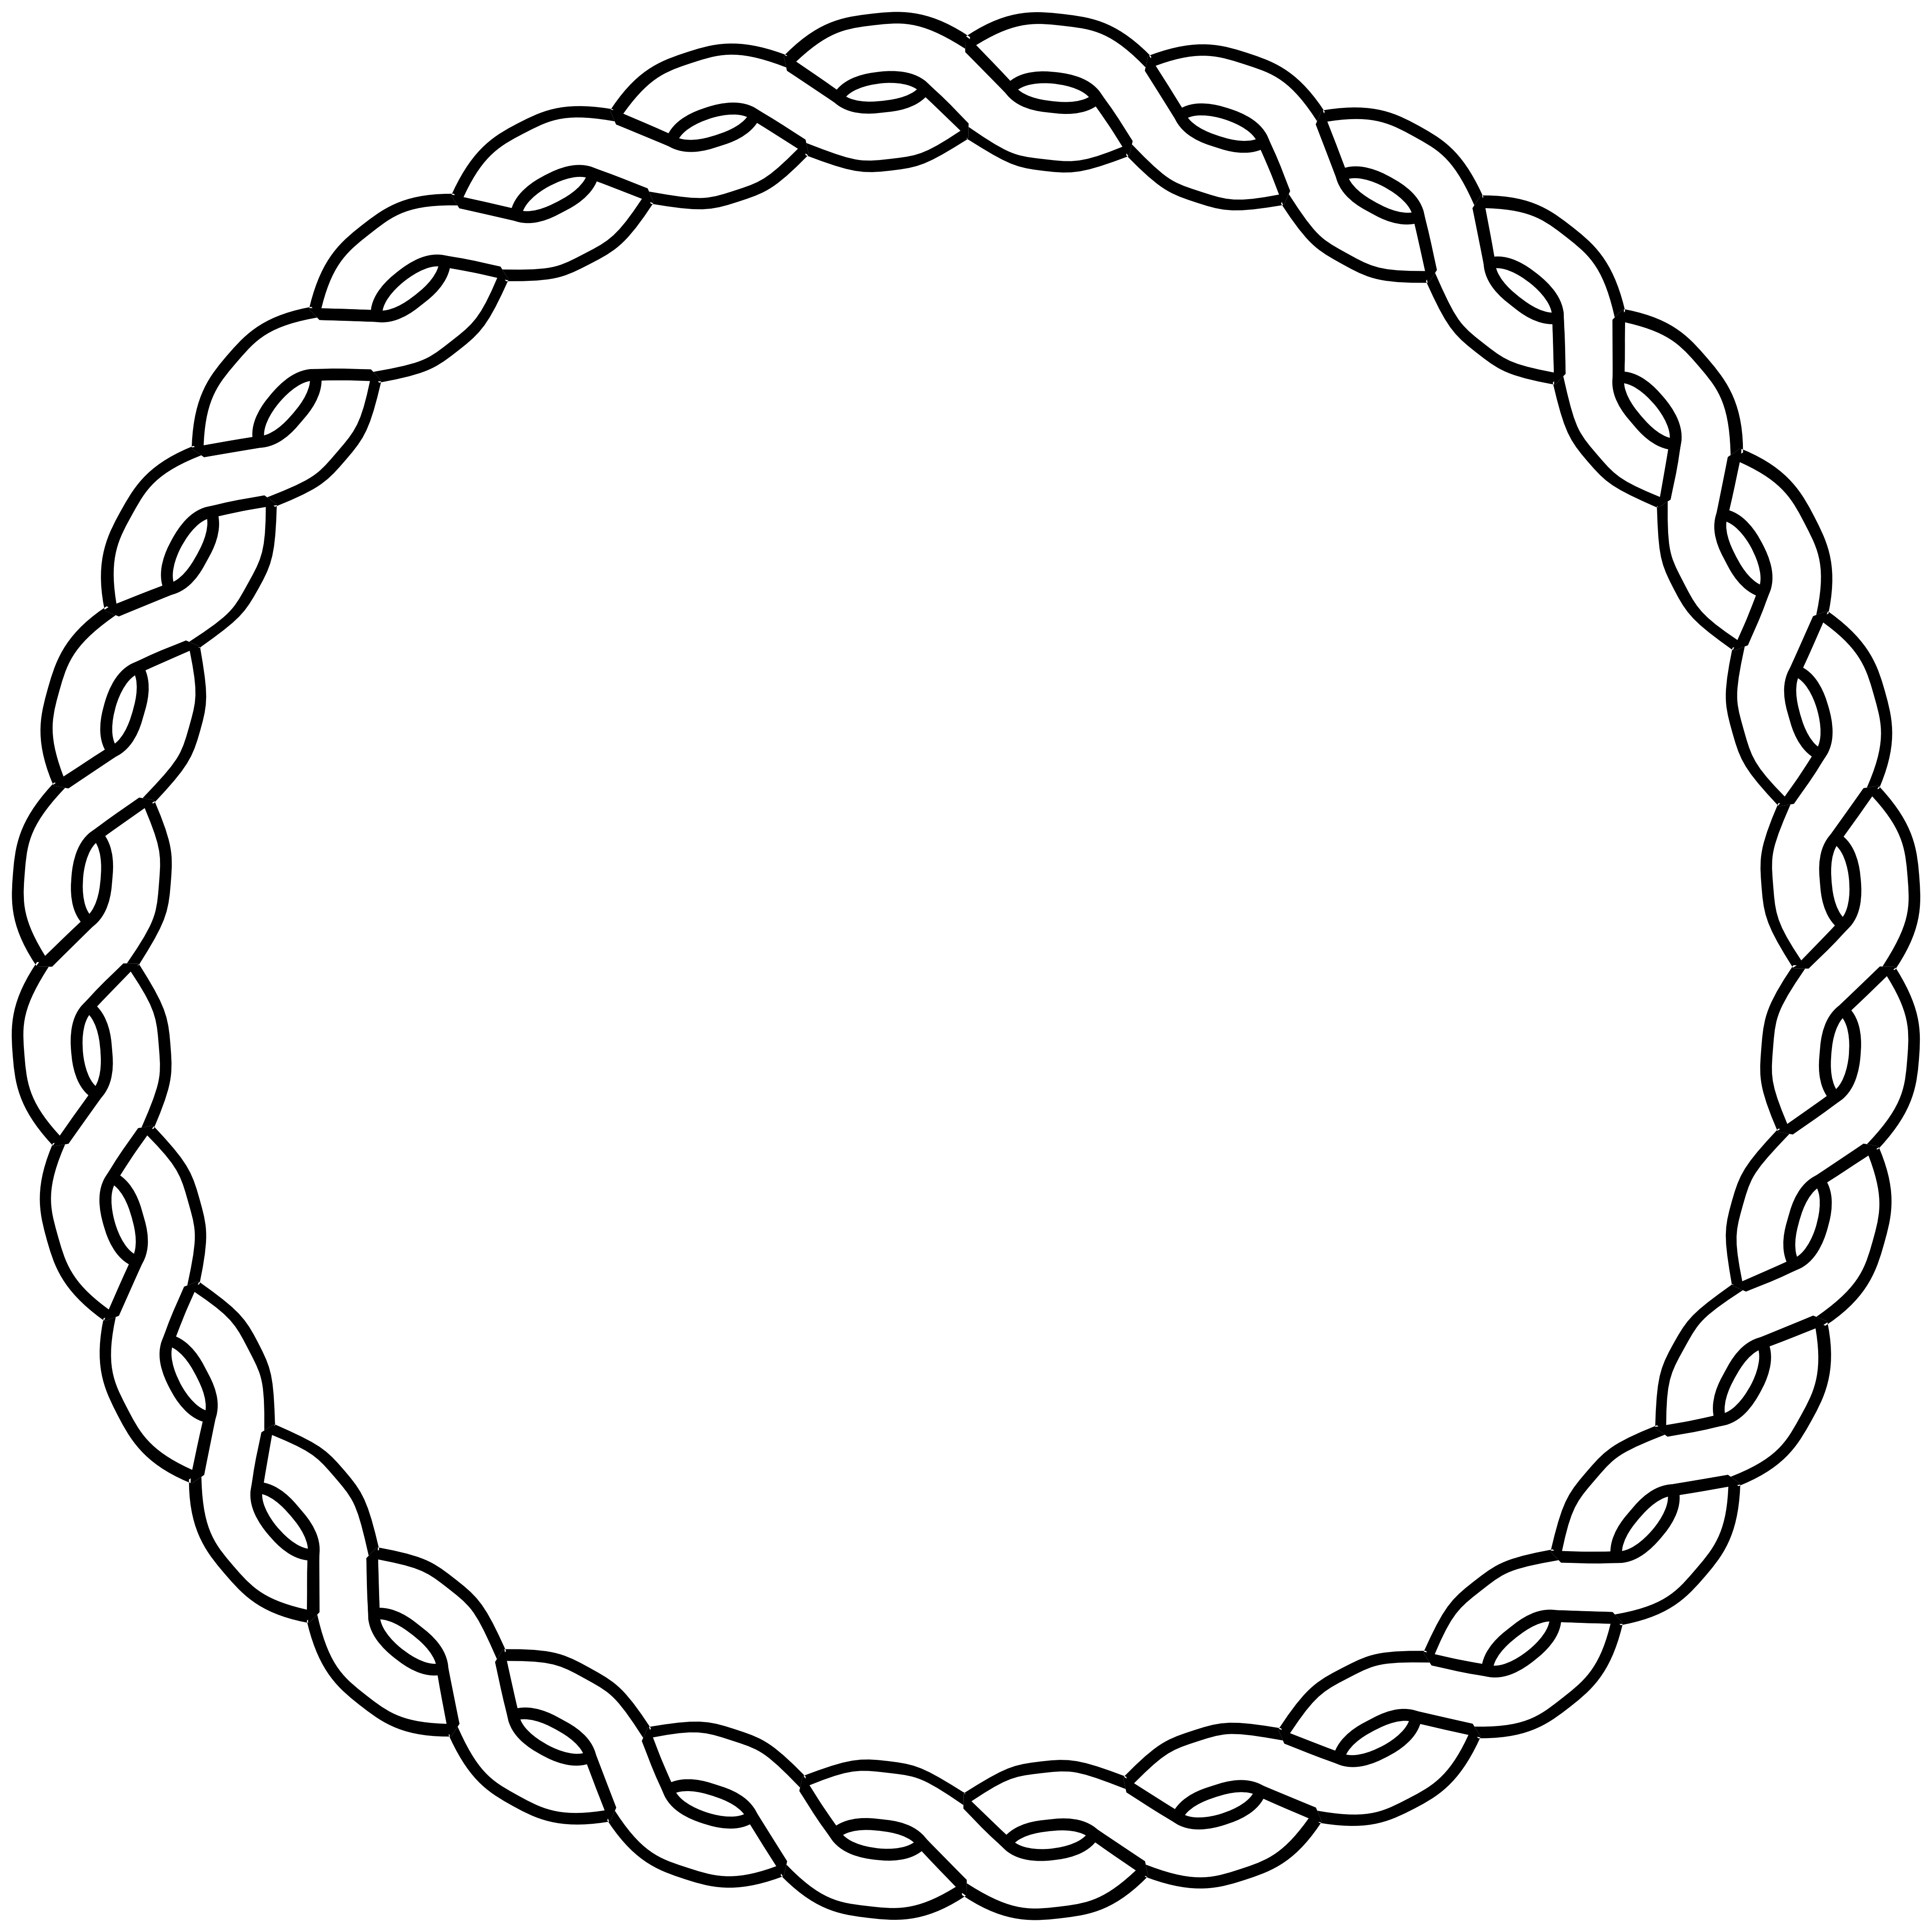 Star circle clipart black and white jpg freeuse library Rope Clipart Black And White | Clipart Panda - Free Clipart Images jpg freeuse library